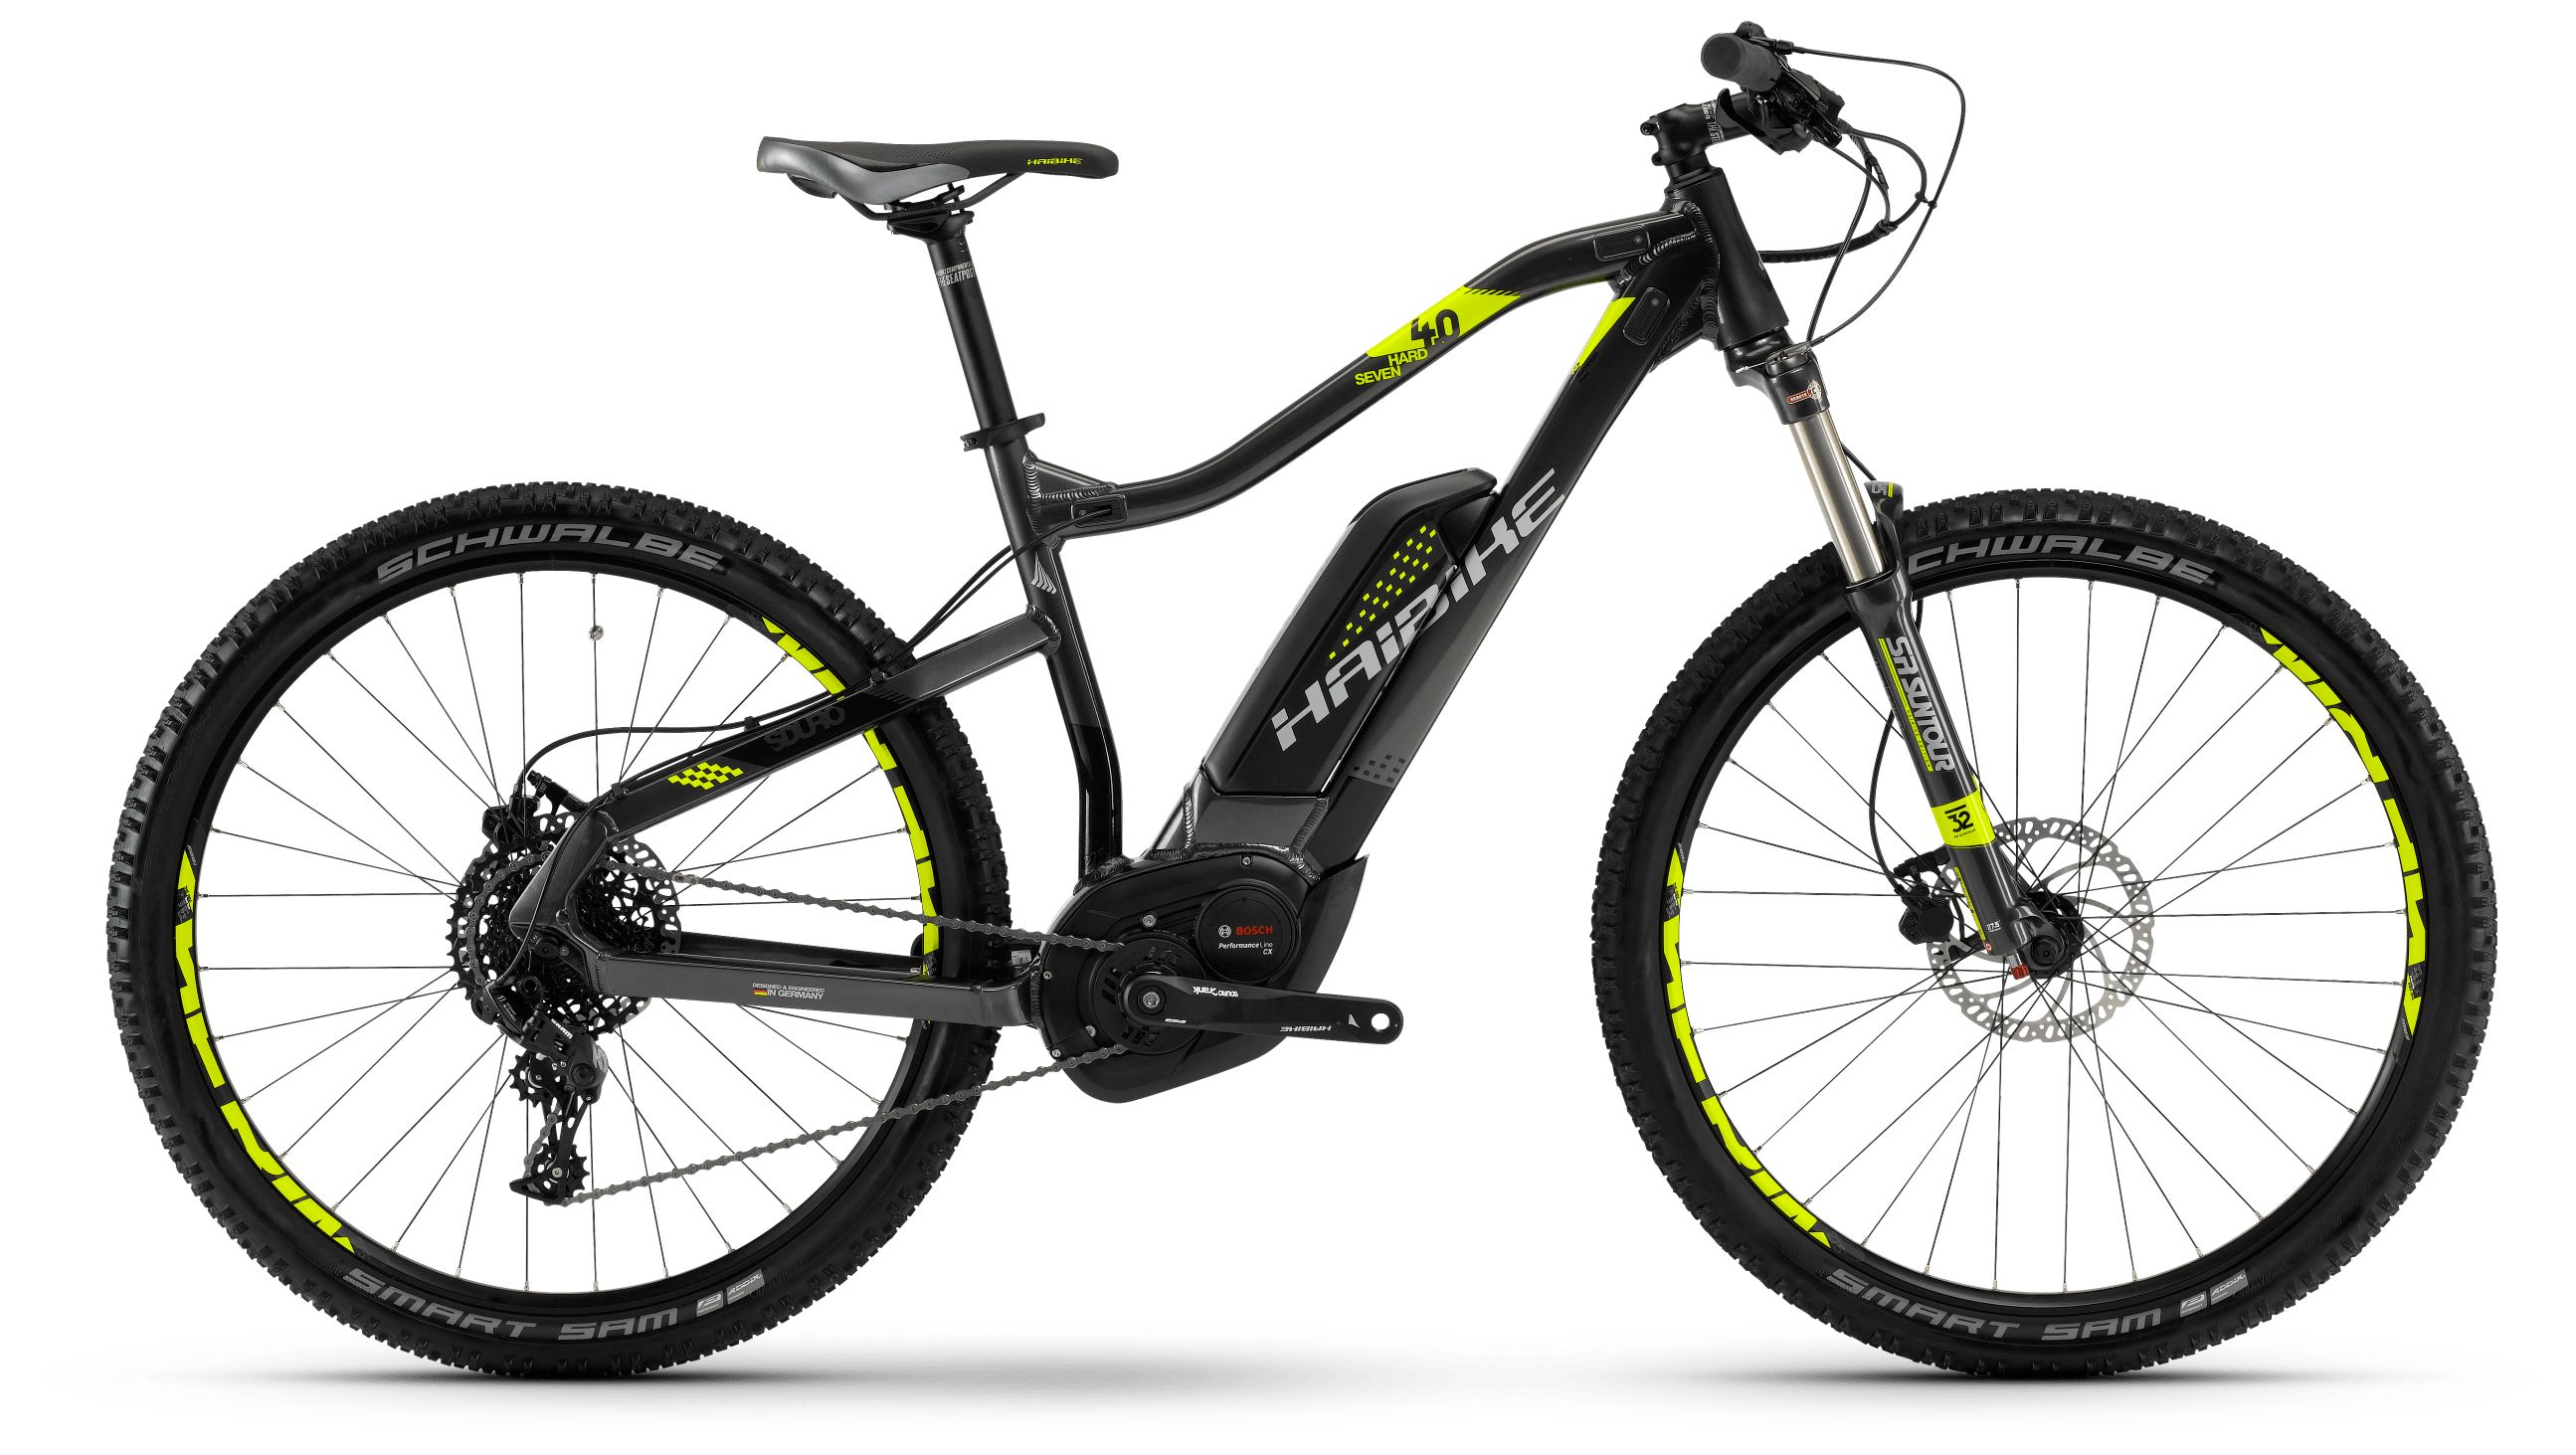 Велосипед Haibike Sduro HardSeven 4.0 500Wh 11s NX 2018 велосипед haibike sduro hardseven 9 0 500wh 11s xt 2018